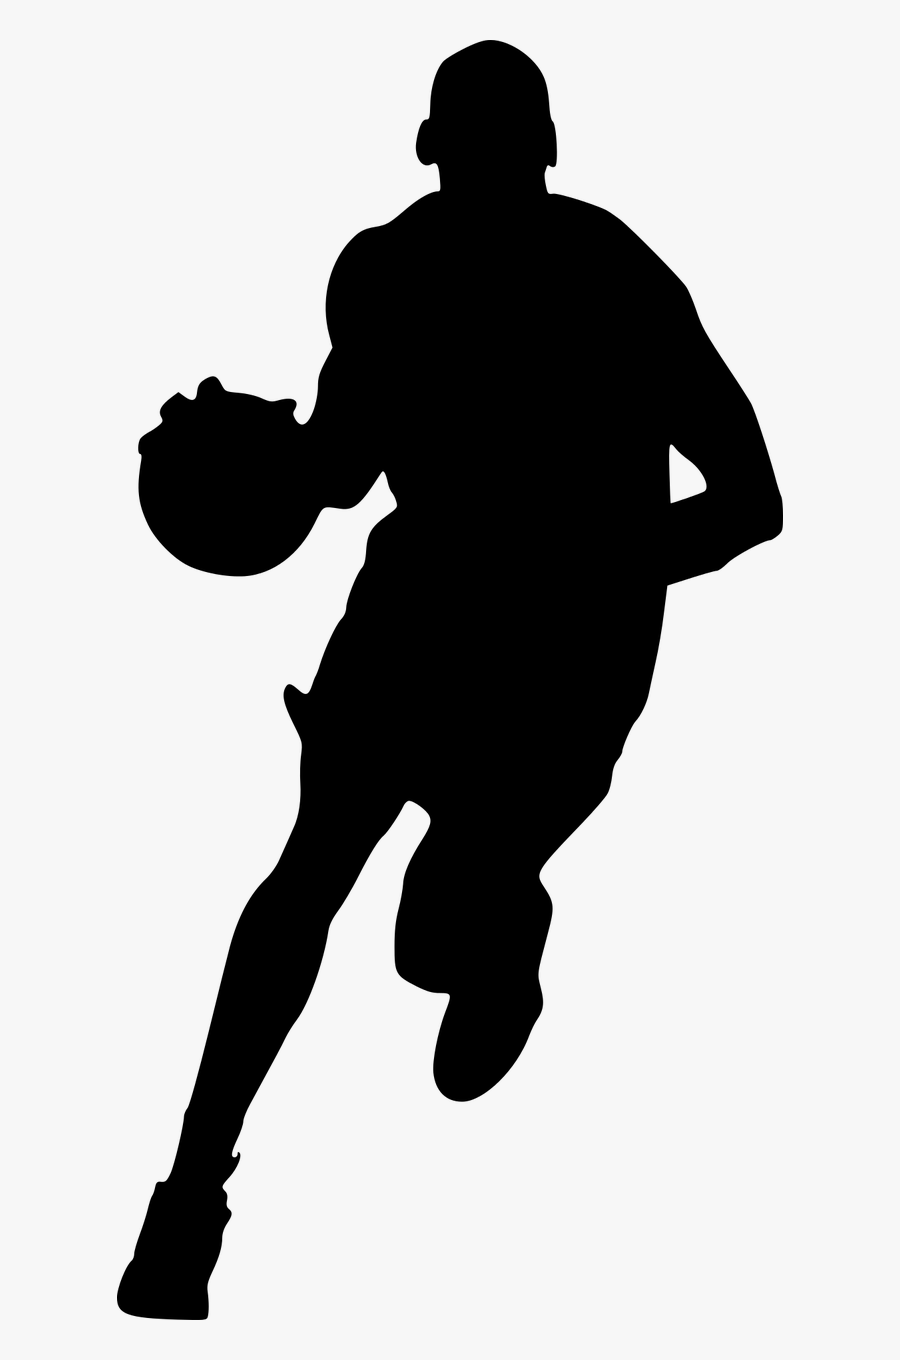 Silhouette Basketball Dunking Free Picture - Dunking Basketball Player Silhouette, Transparent Clipart